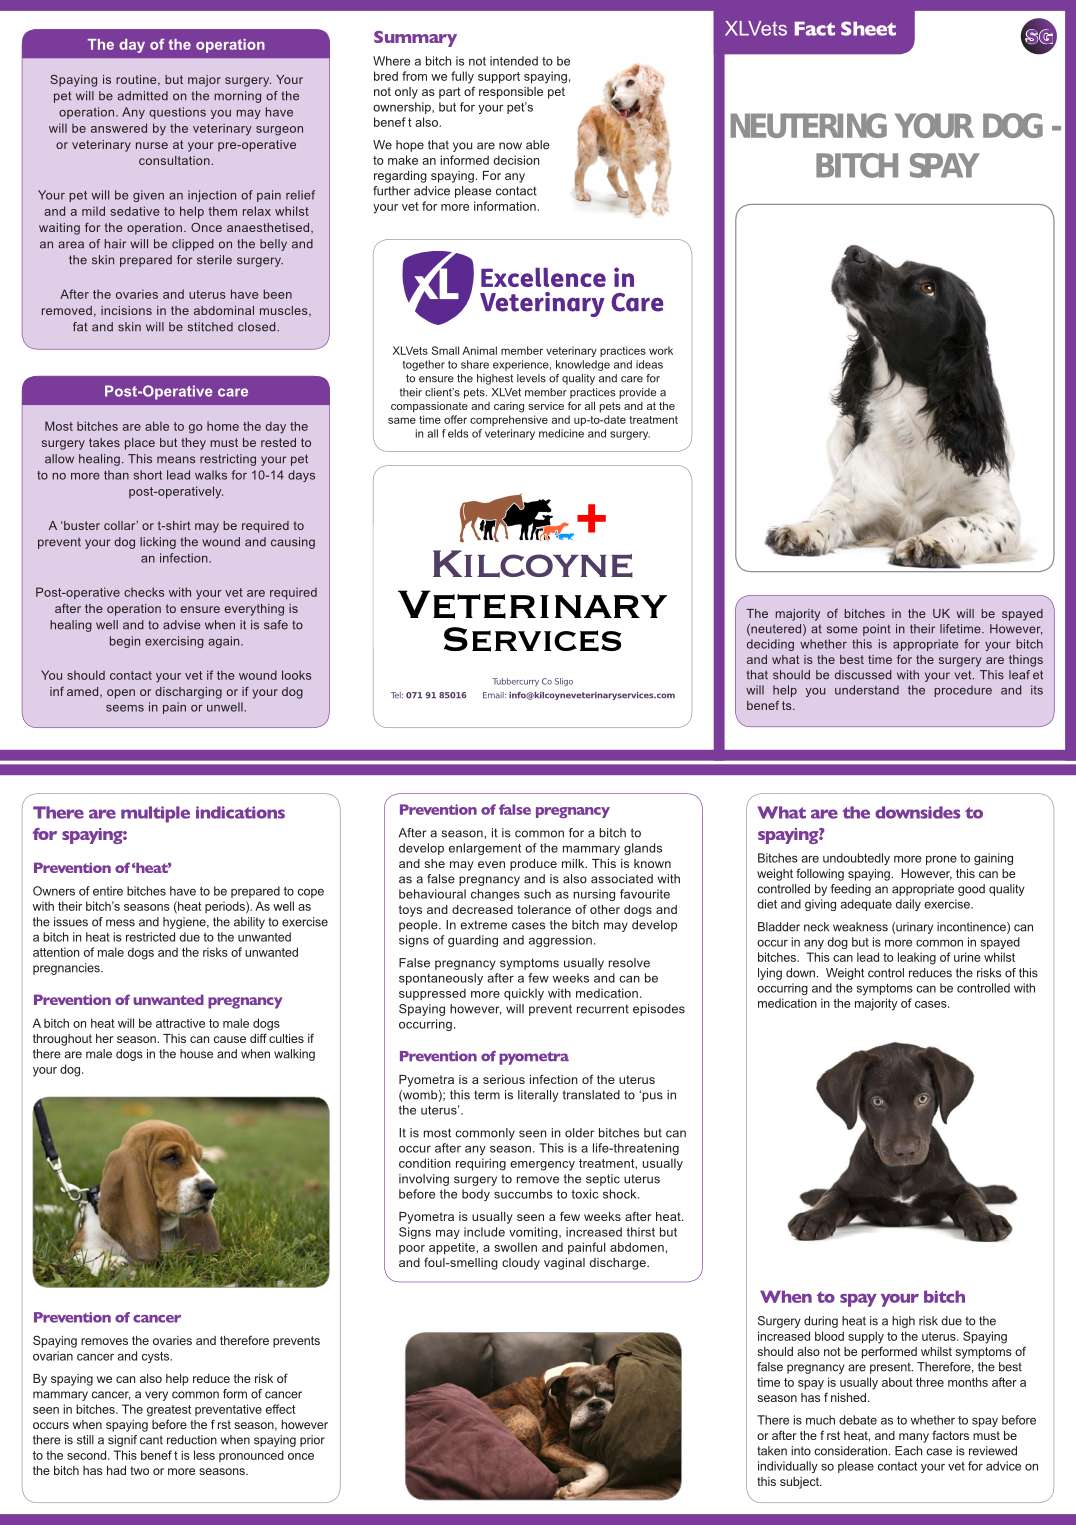 kilcoyne_veterinary_services_xlvets_factsheet_bitch_spay